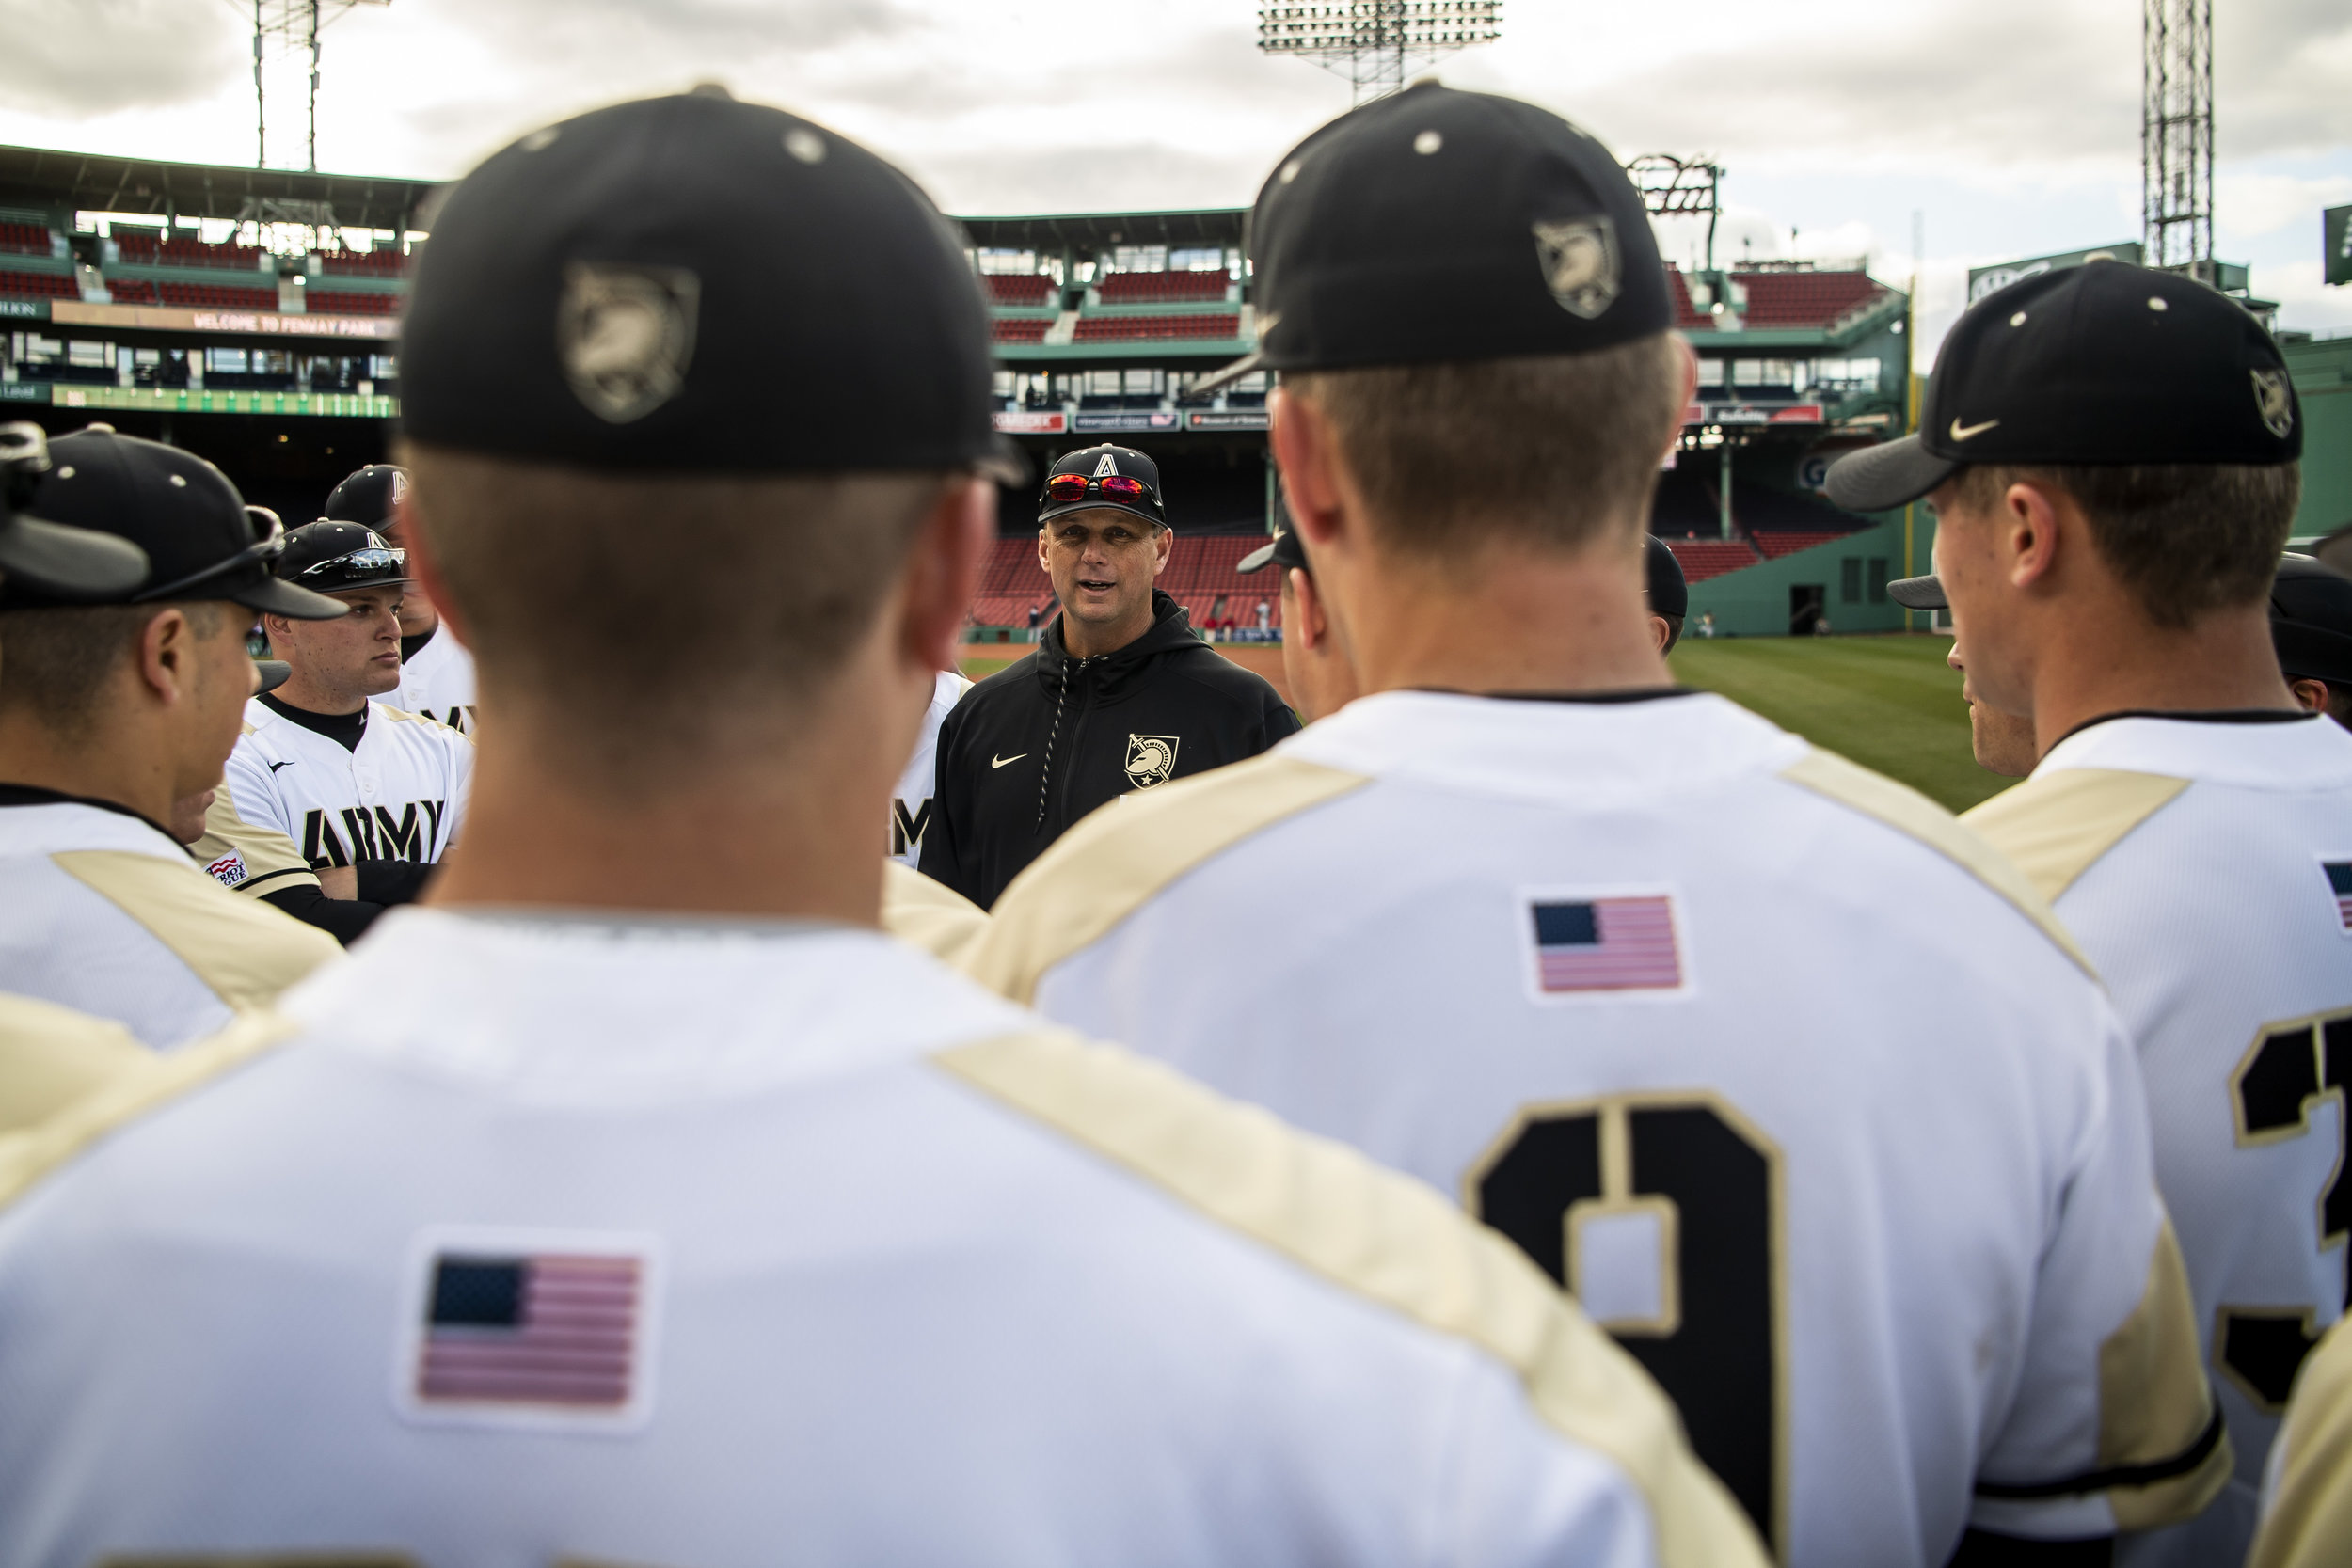 April 20, 2018, Boston, MA: The Army head coach addresses the team before Army - West Point faces The Naval Academy at Fenway Park in Boston, Massachusetts Friday, April 20, 2018. (Photo by Matthew Thomas/Boston Red Sox)